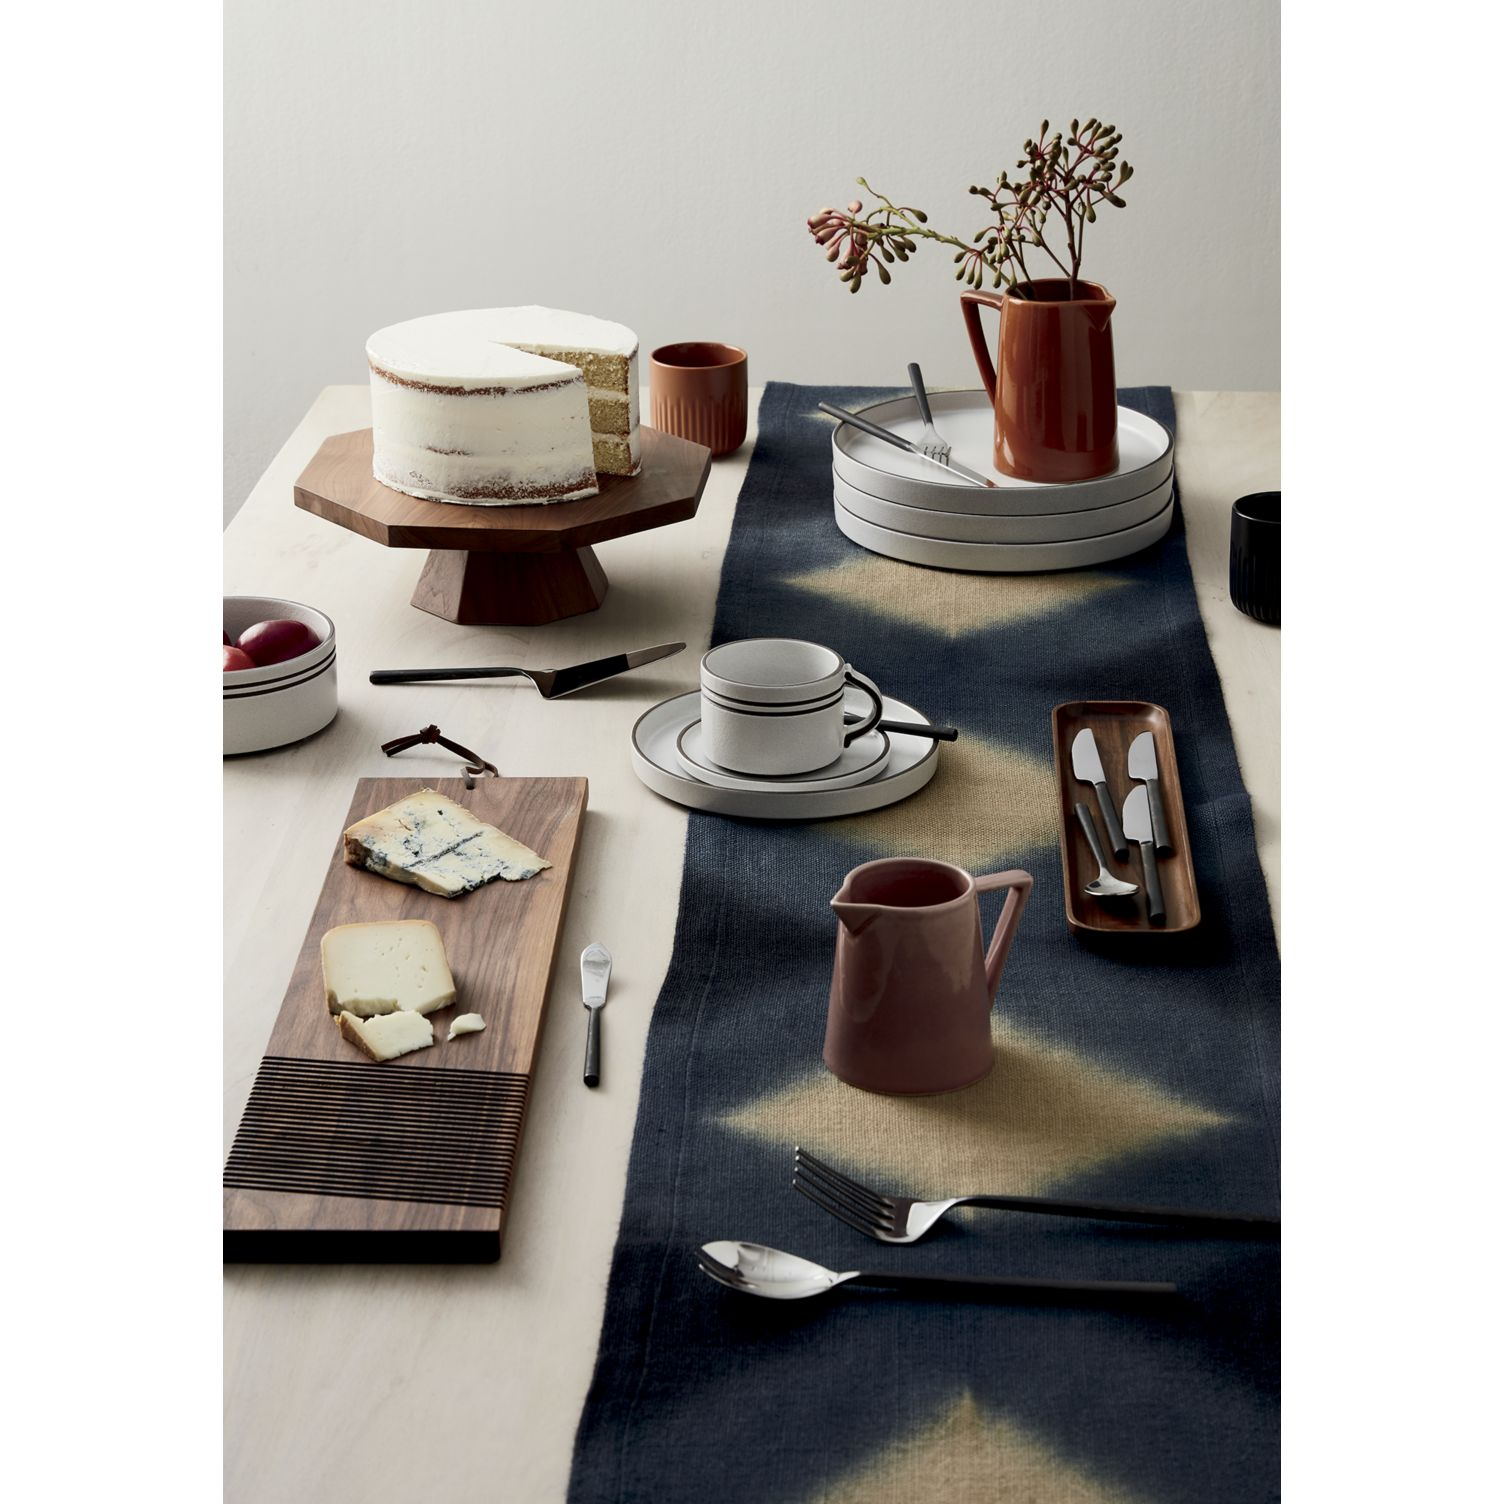 An assortment of rich, earthy tones on a fall table by CB2